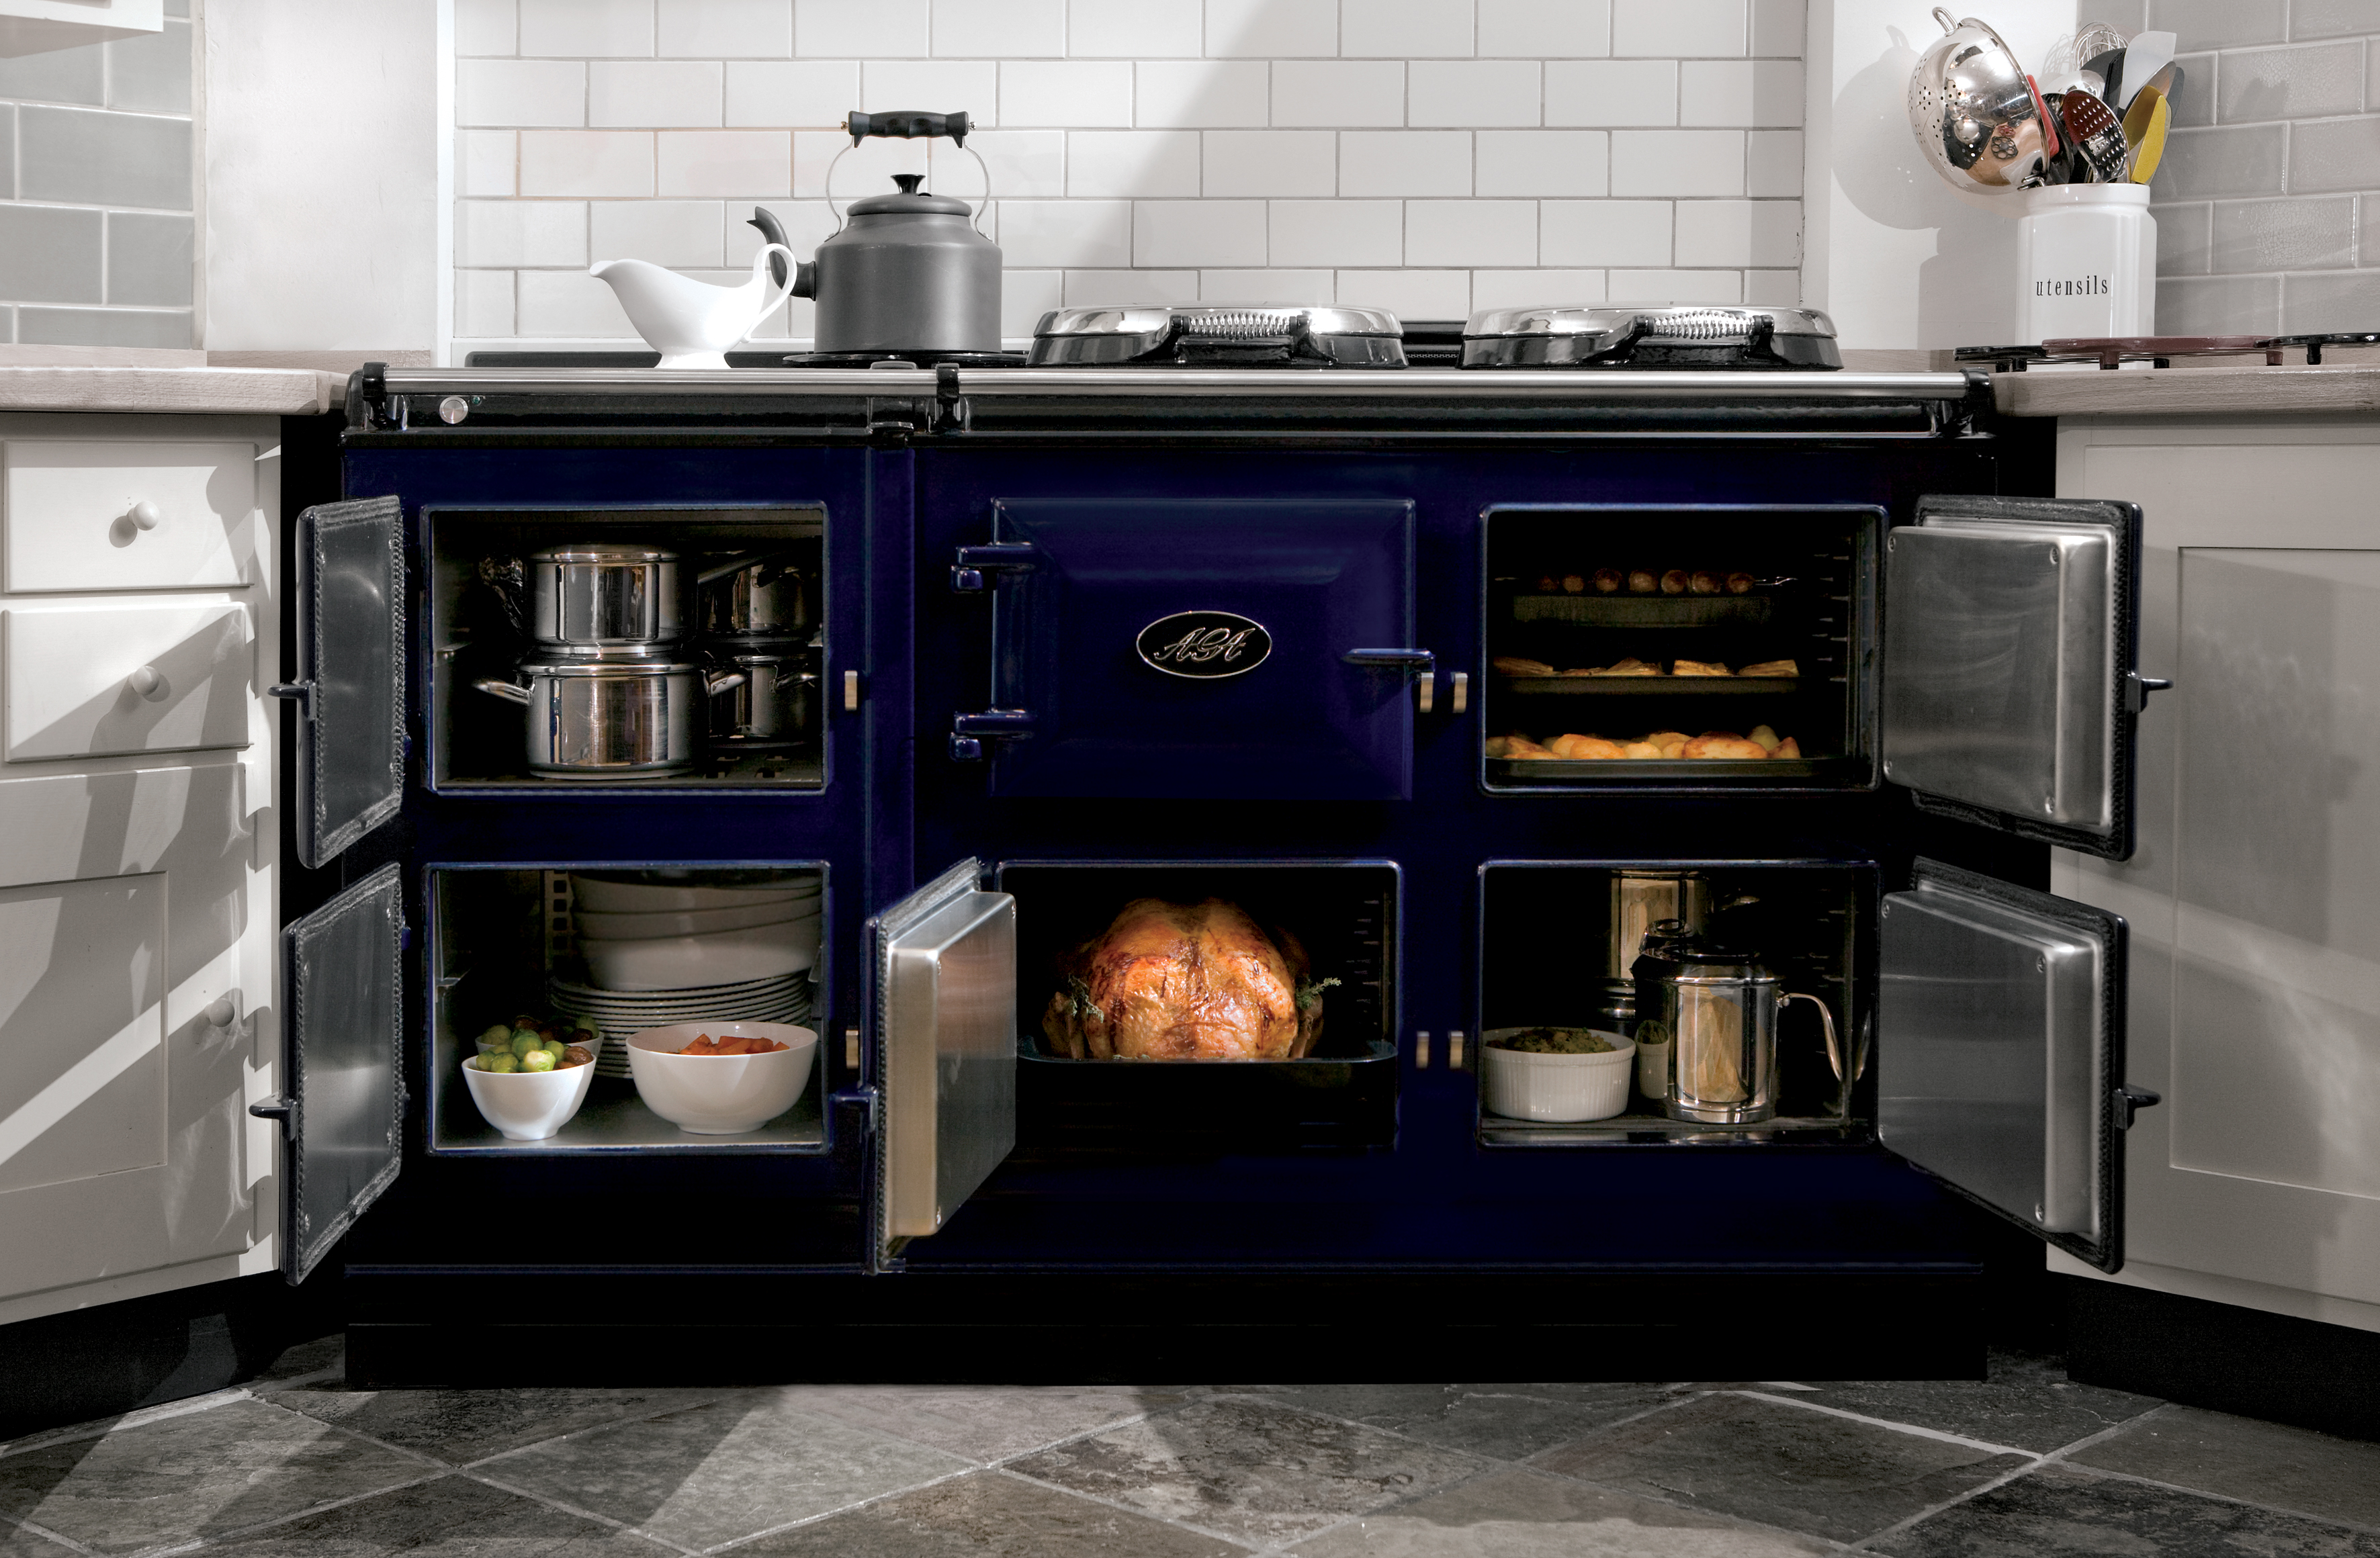 ordinary Aga Kitchen Appliances #7: Will America Go Gaga For AGA? The Fancy British Stove Is Poised For A U.S.  Breakthrough - Food Republic